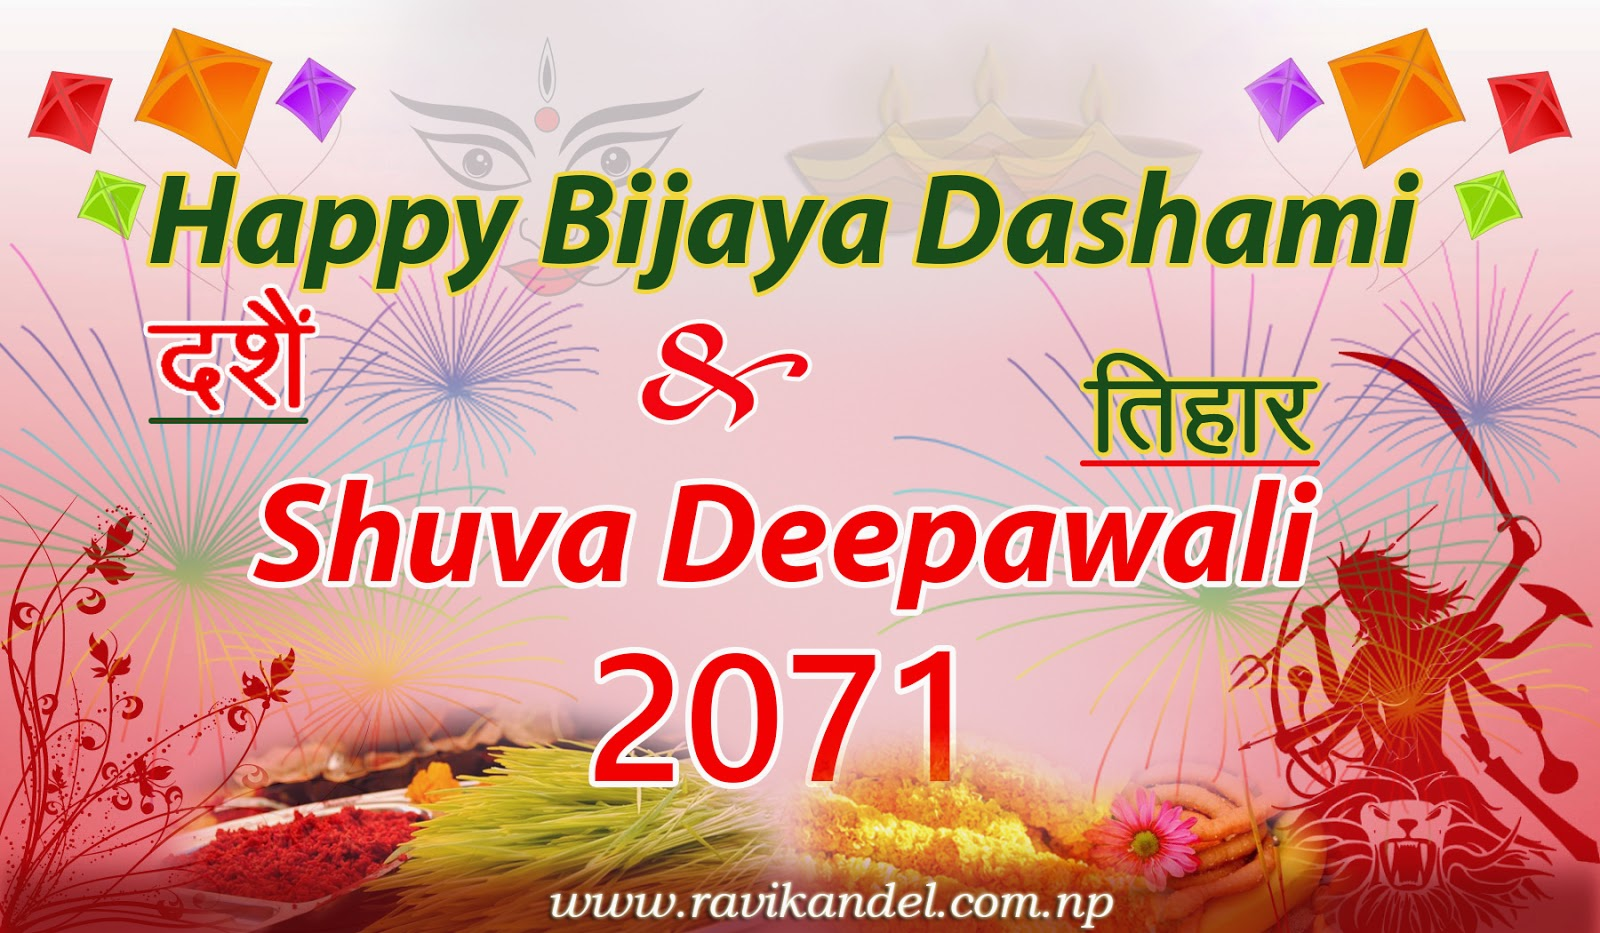 Dashain and tihar greeting for 2071 welcome to ravi kandel dashain tihar greeting card m4hsunfo